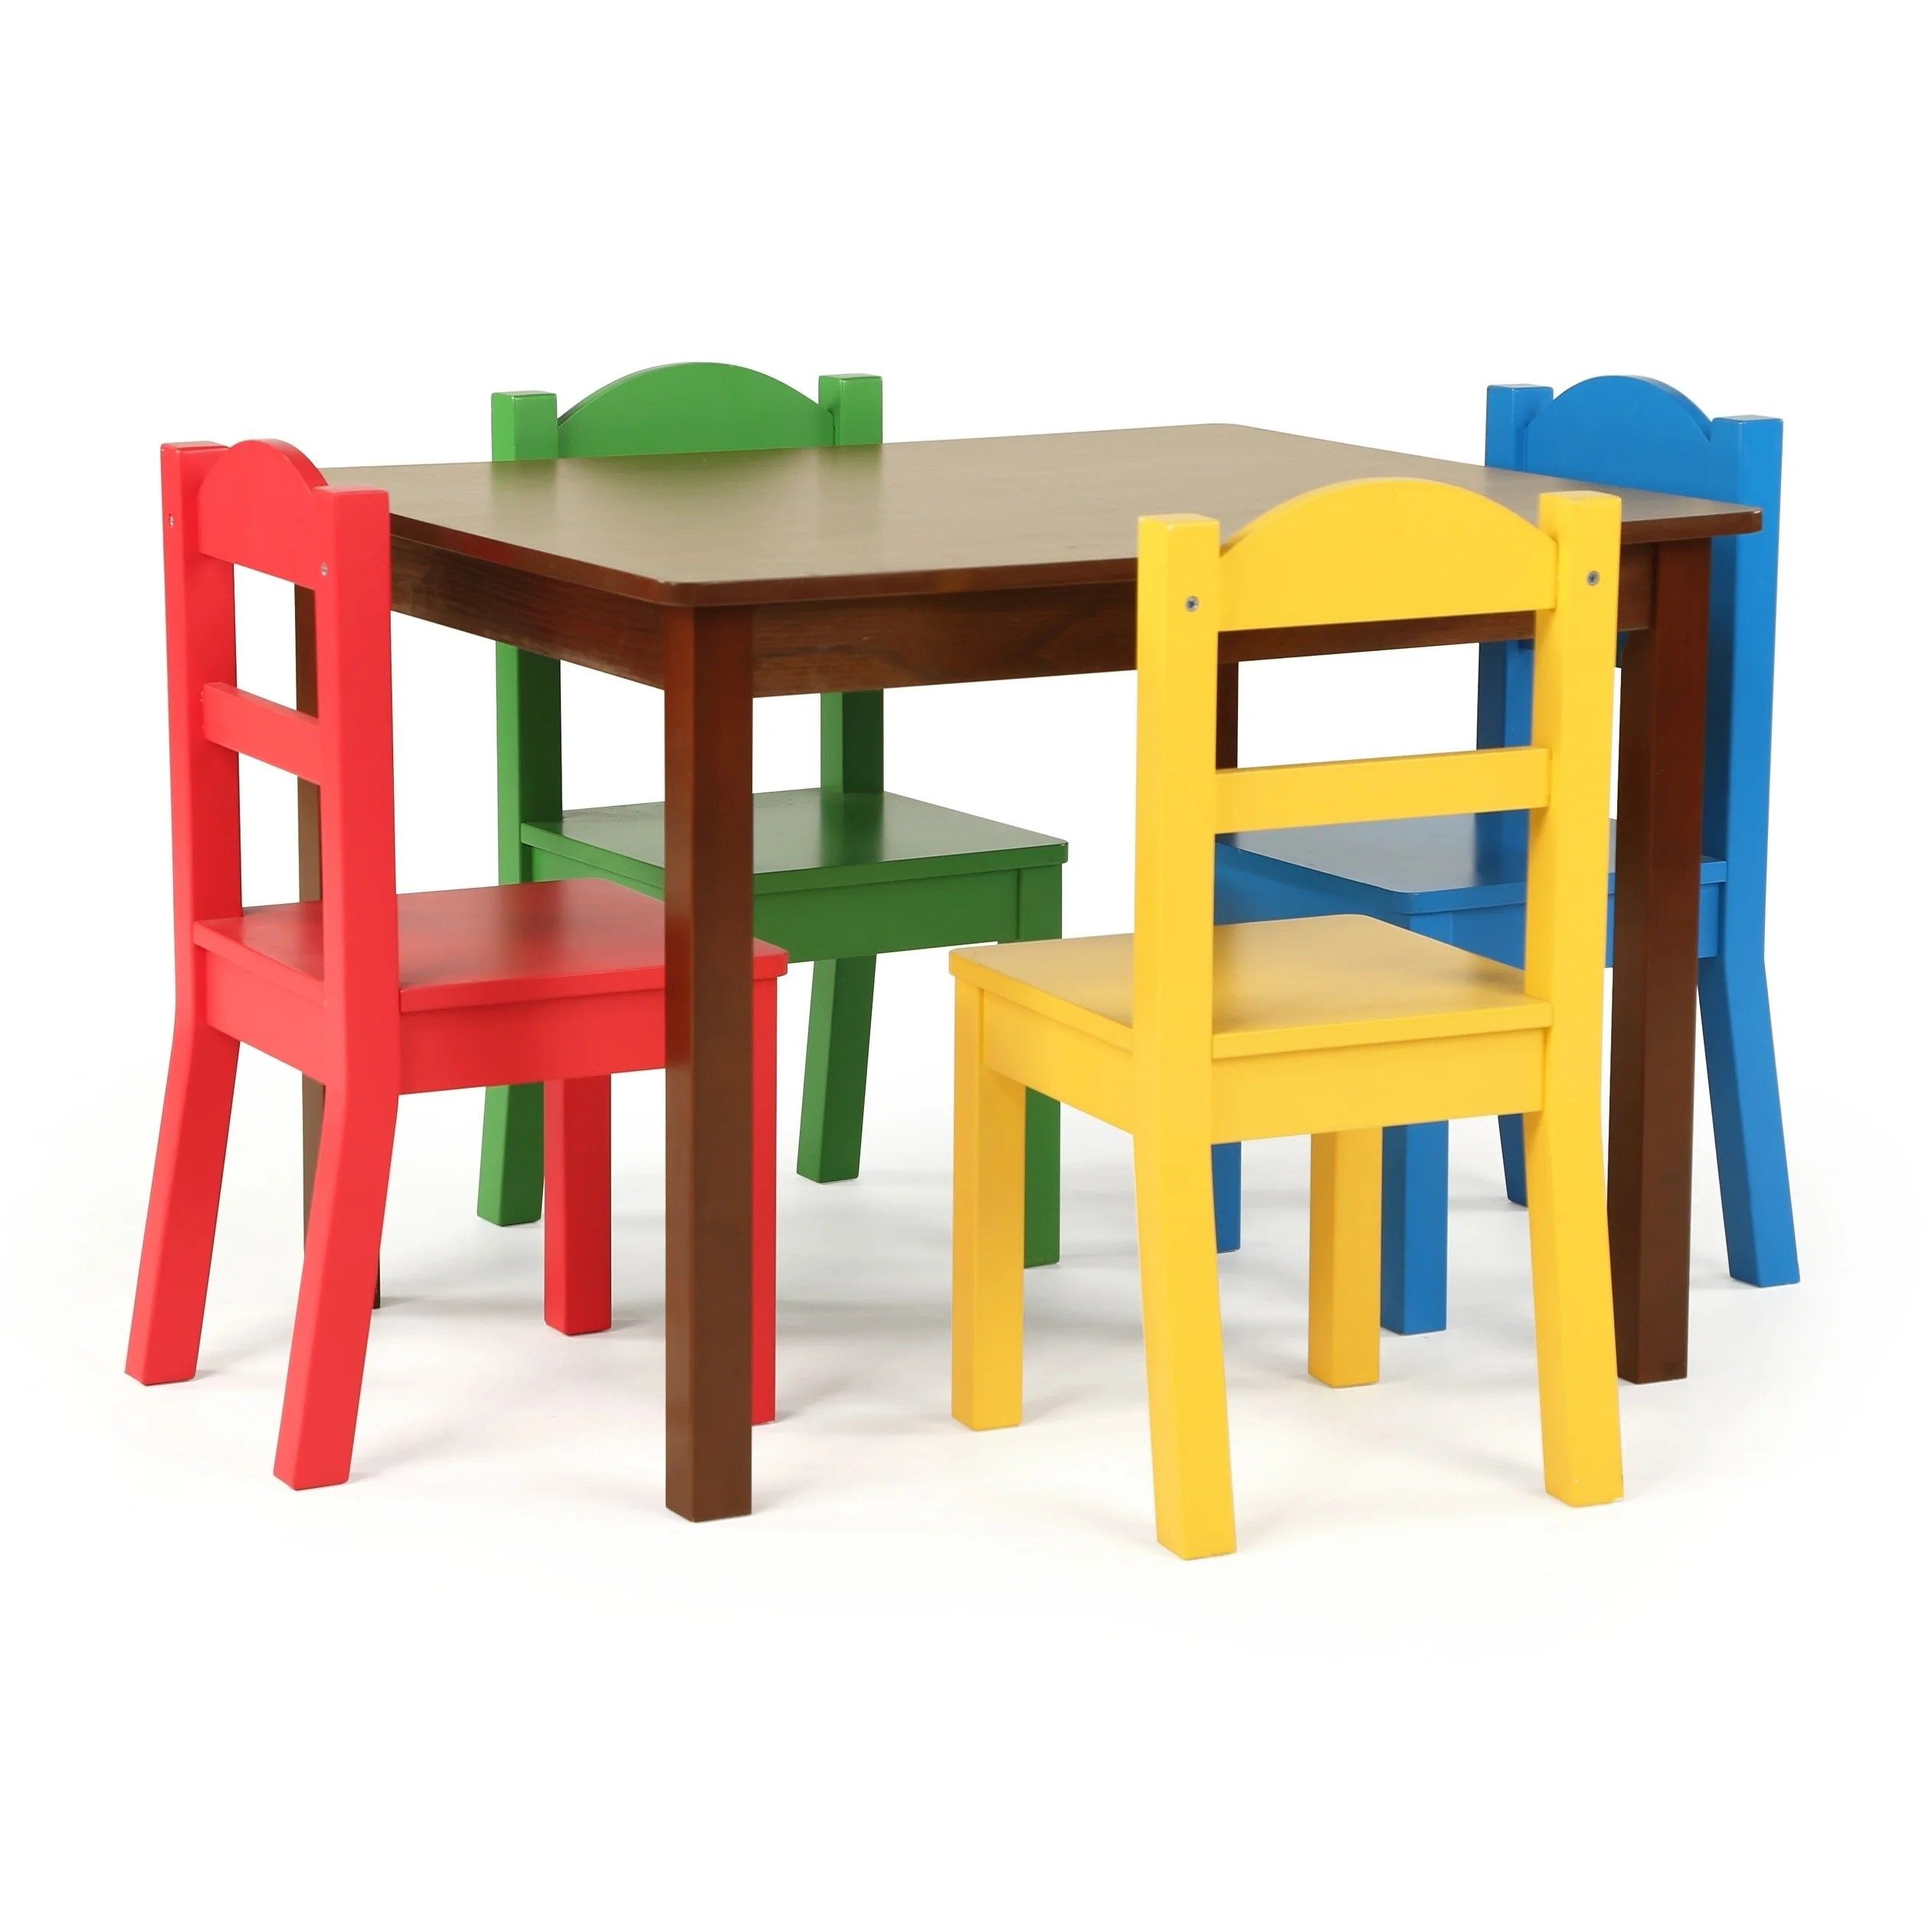 Kids Wood Table And Chairs Details About Discover 5 Piece Wood Kids Table Chairs Set In Dark Walnut Primary